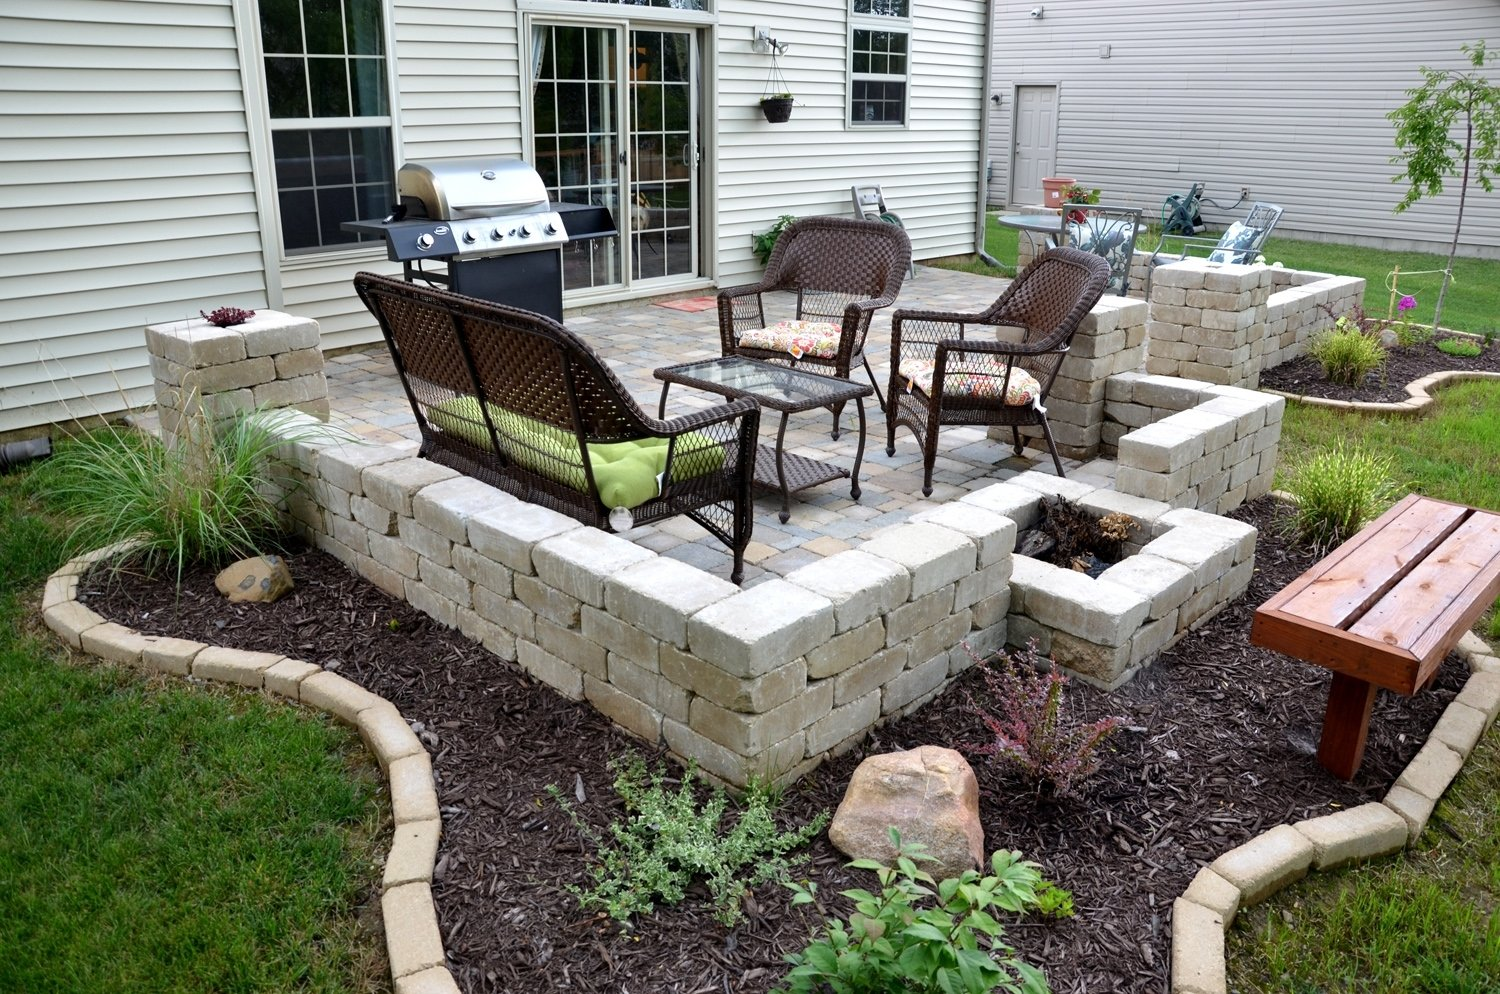 10 Ideal Do It Yourself Patio Ideas diy backyard paver patio outdoor oasis tutorial the rodimels 2020